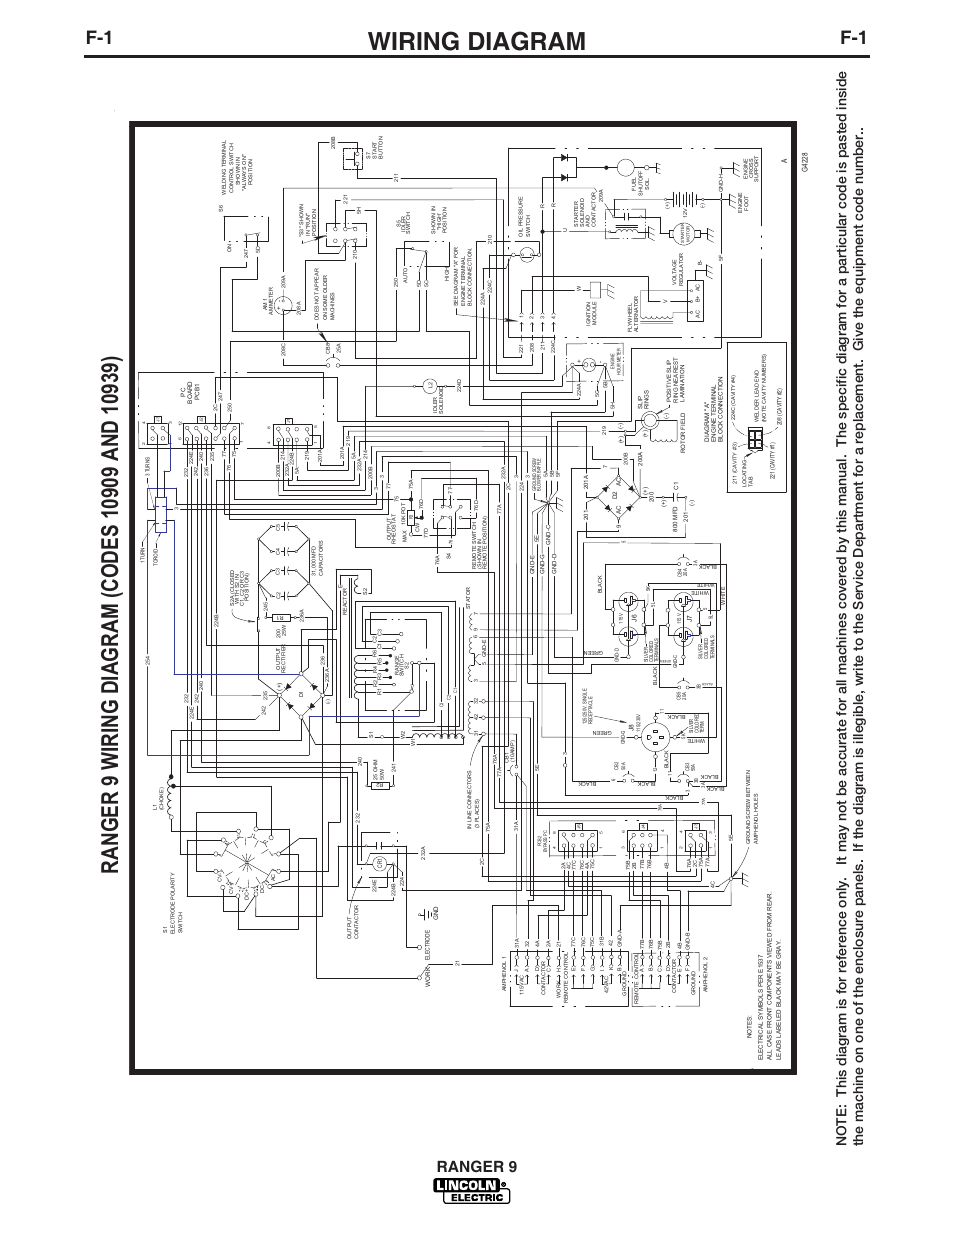 hight resolution of wiring diagram ranger 9 lincoln electric im753 ranger 9 user manual page 33 44